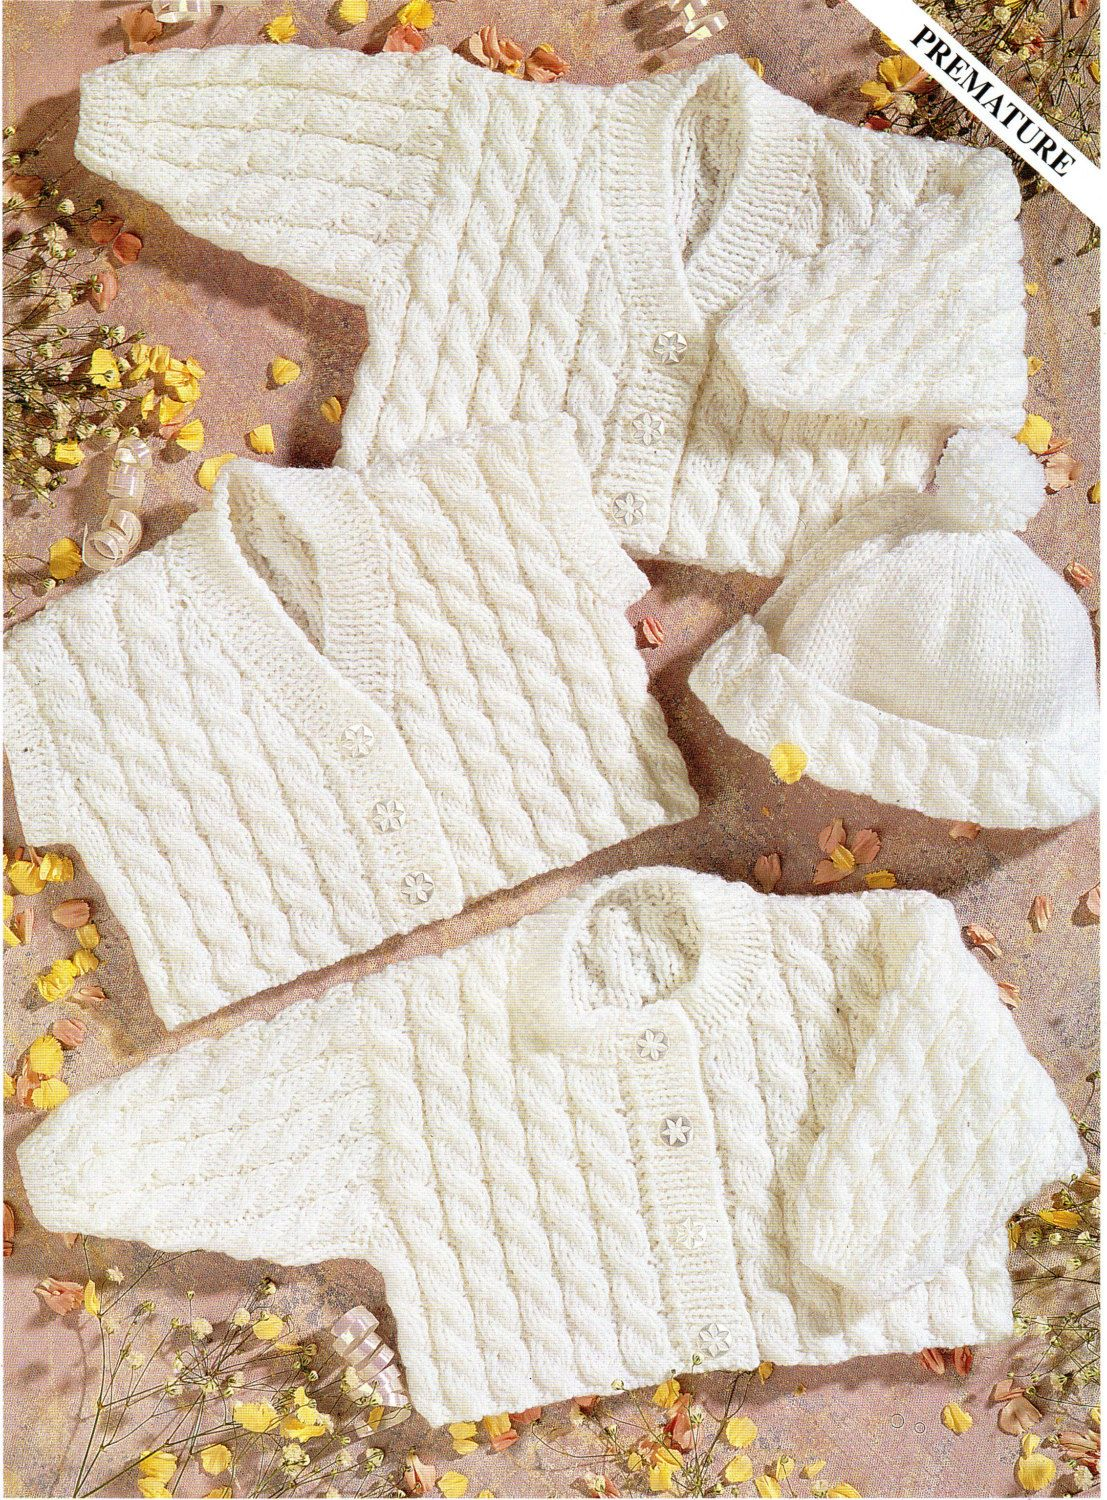 Baby cable cardigans waistcoat hat knitting pattern pdf premature baby cable cardigans waistcoat hat knitting pattern pdf premature newborn bankloansurffo Image collections